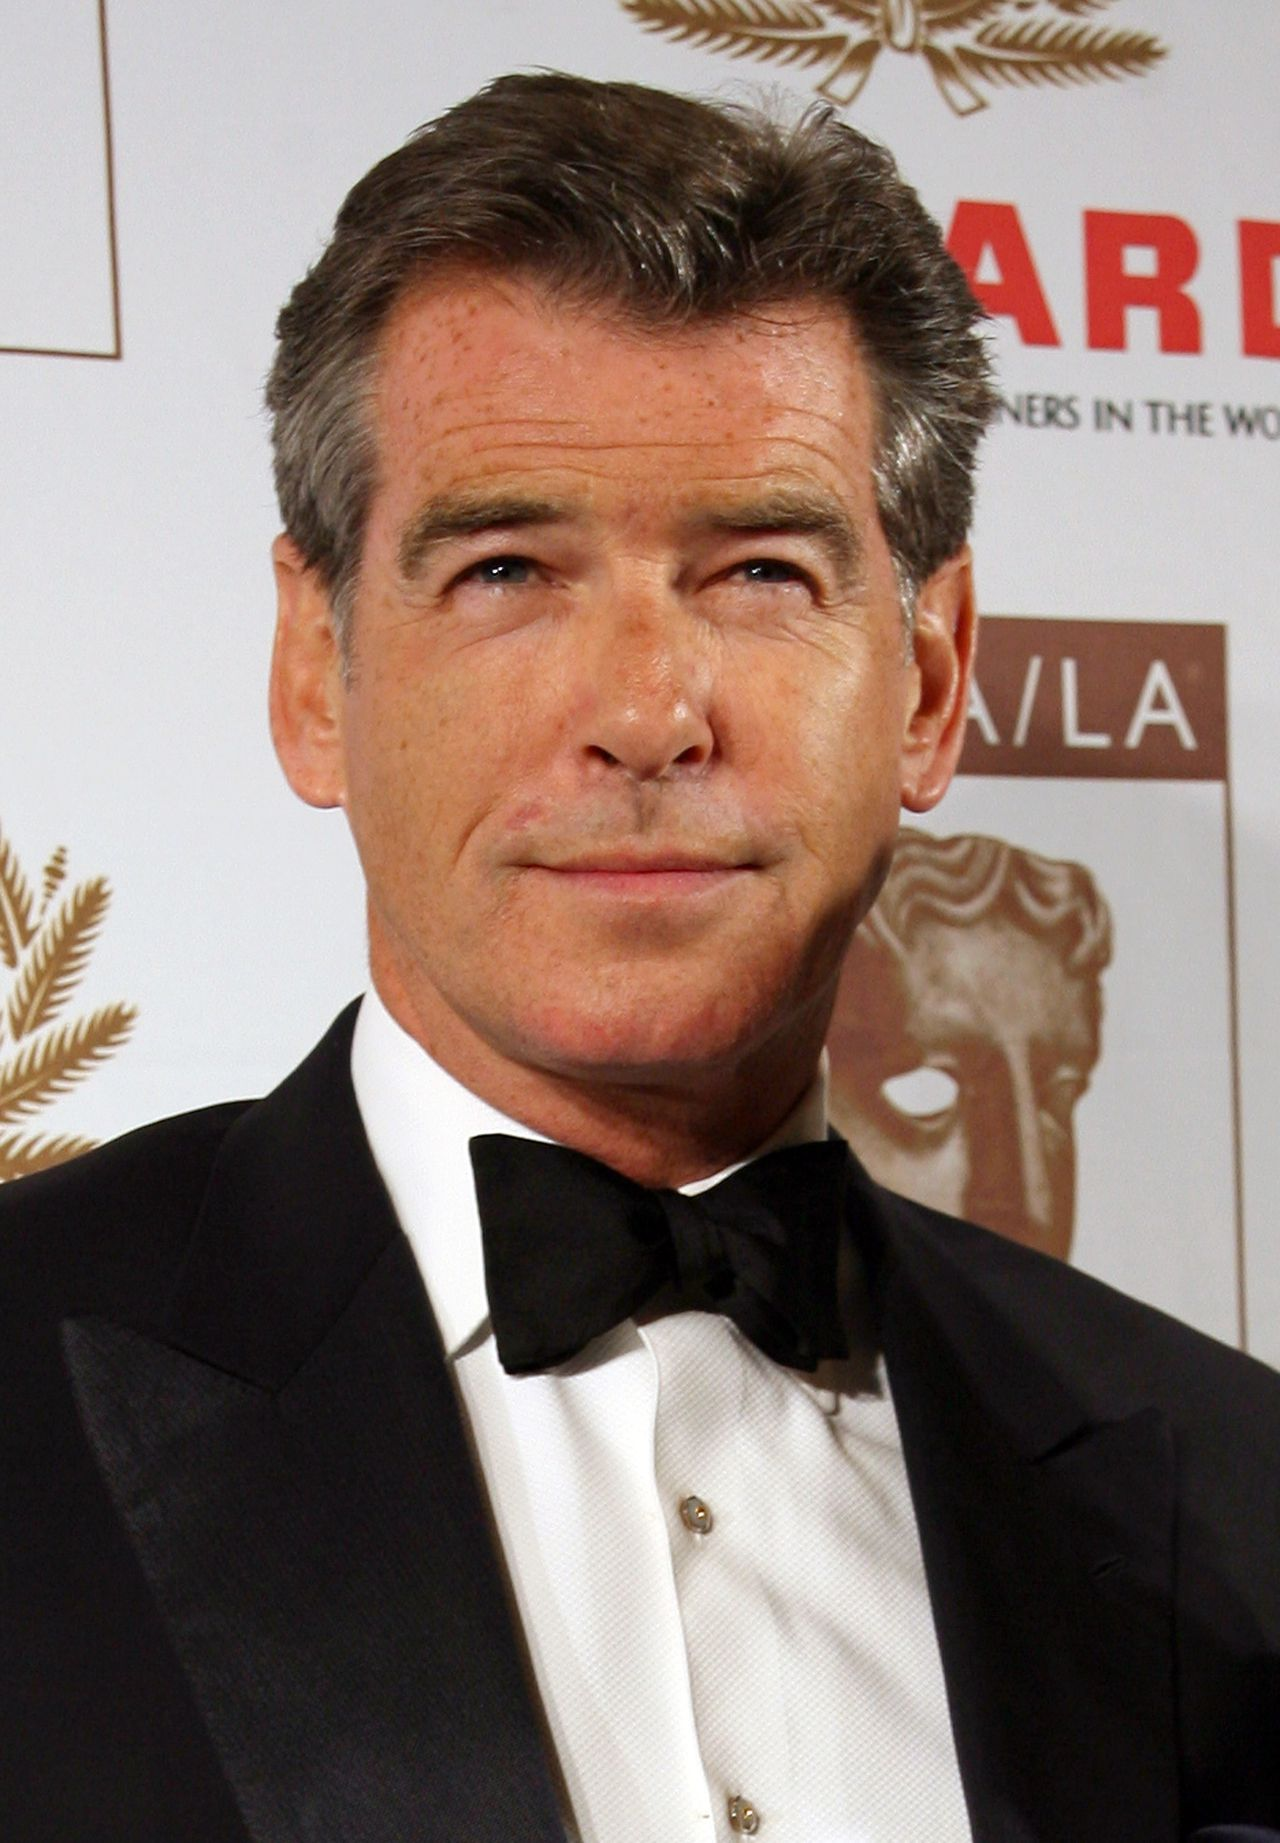 "Pierce Brosnan Foto AFP/ Gabriel Bouys (FILES) US actor Pierce Brosnan arrives at the British Academy of Film and Television Arts/Los Angeles (BAFTA/LA) Awards, in this 01 November 2007 file photo in Los Angeles, California. Brosnan is to reprise his role as the world's most debonair thief in ""The Thomas Crown Affair 2"", entertainment industry press reported on 13 November 2007. The Irish-born actor best known for his portrayal of superspy James Bond starred in a successful 1999 remake of the classic Steve McQueen thriller about a corporate tycoon who steals priceless works of art for kicks. AFP PHOTO/GABRIEL BOUYS"